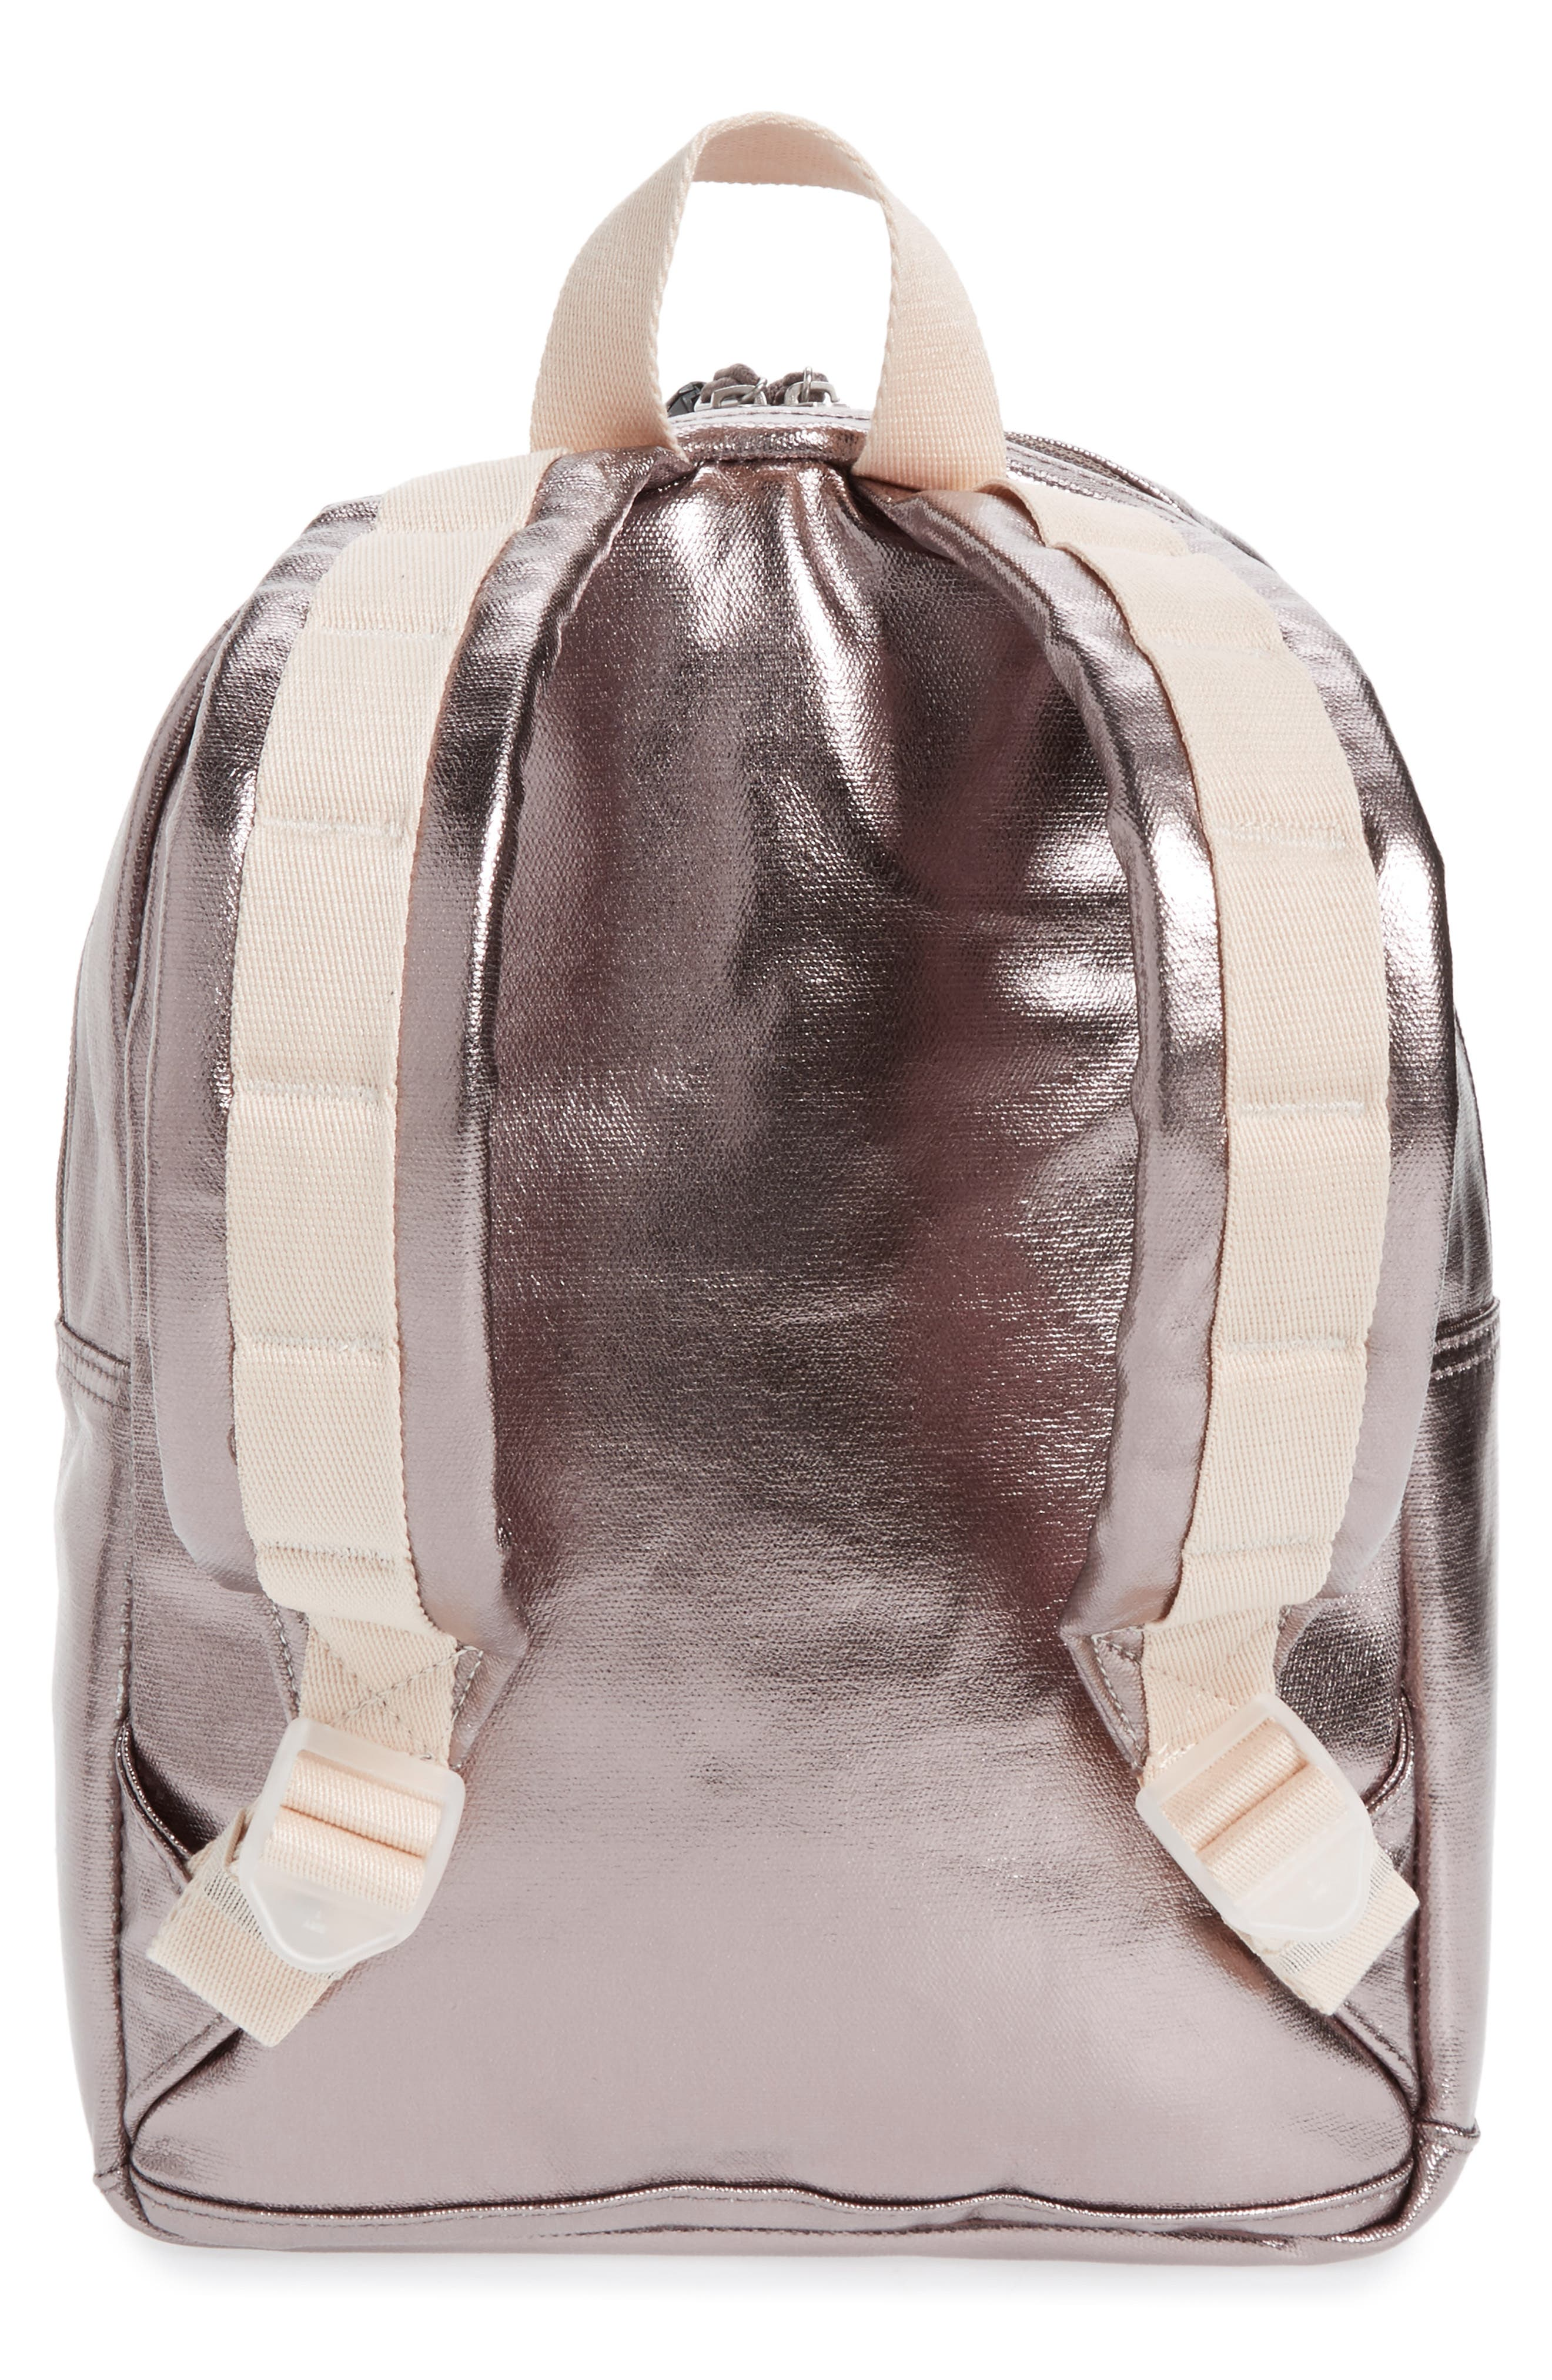 Mini Kane Backpack,                             Alternate thumbnail 3, color,                             Chrome